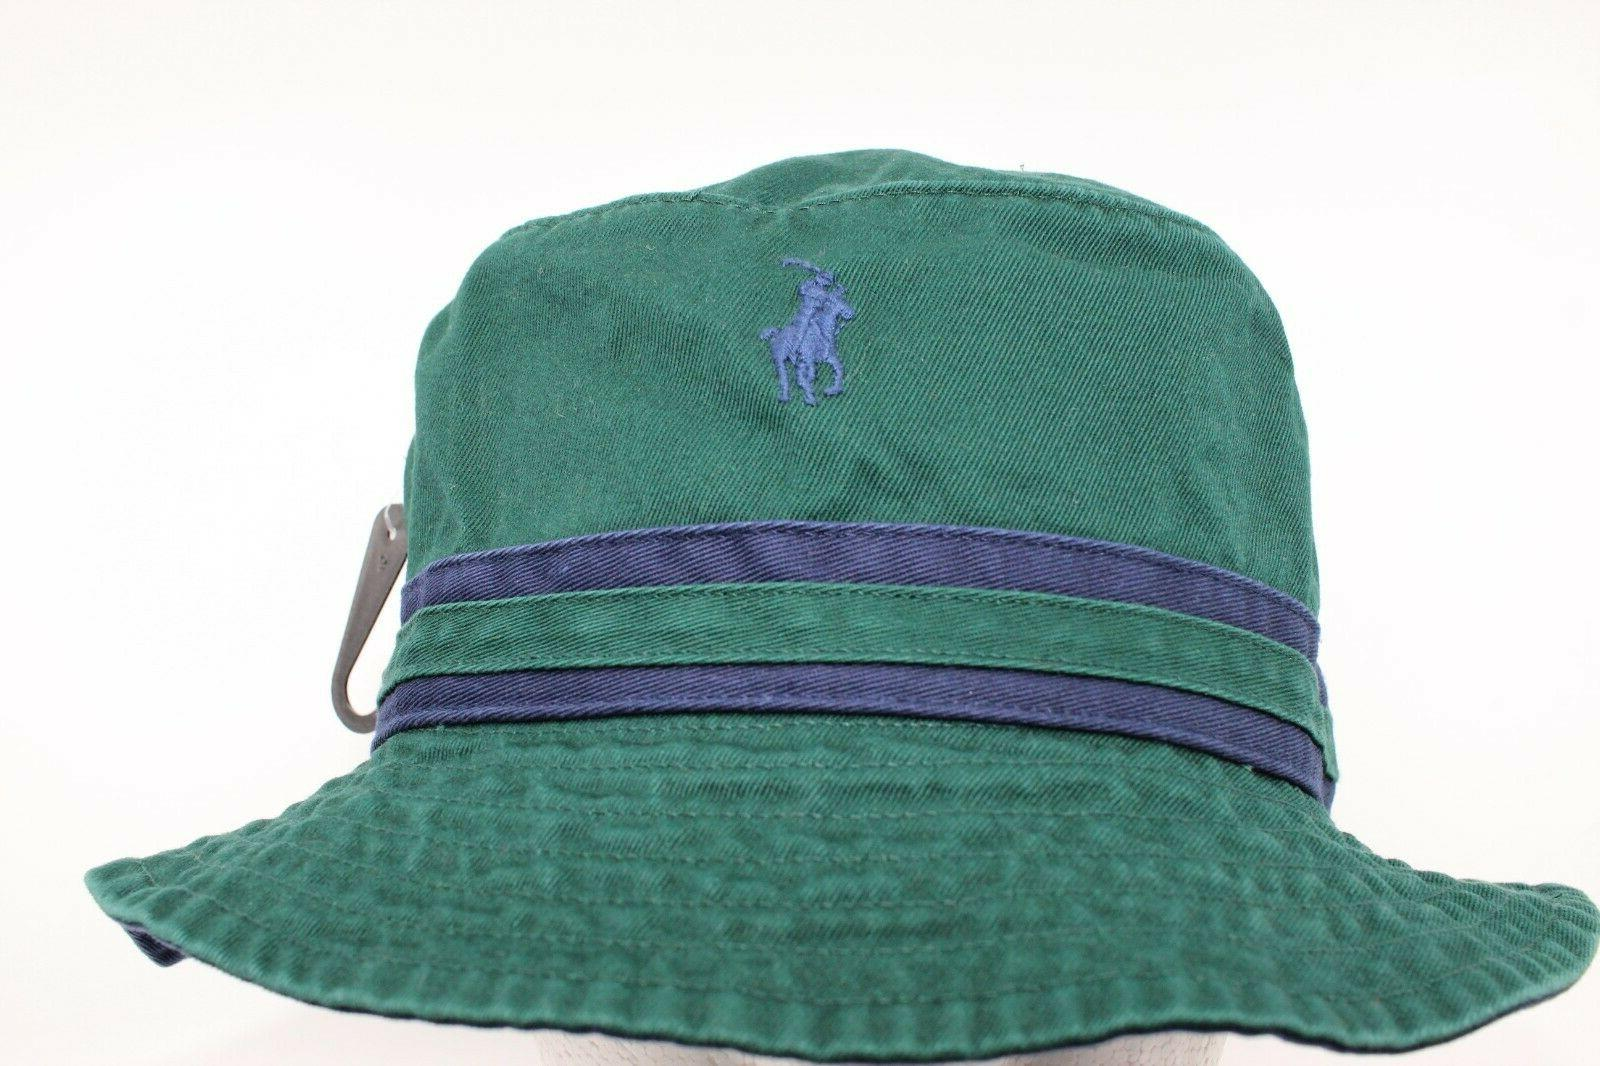 cotton chino bucket hat golf sun beach